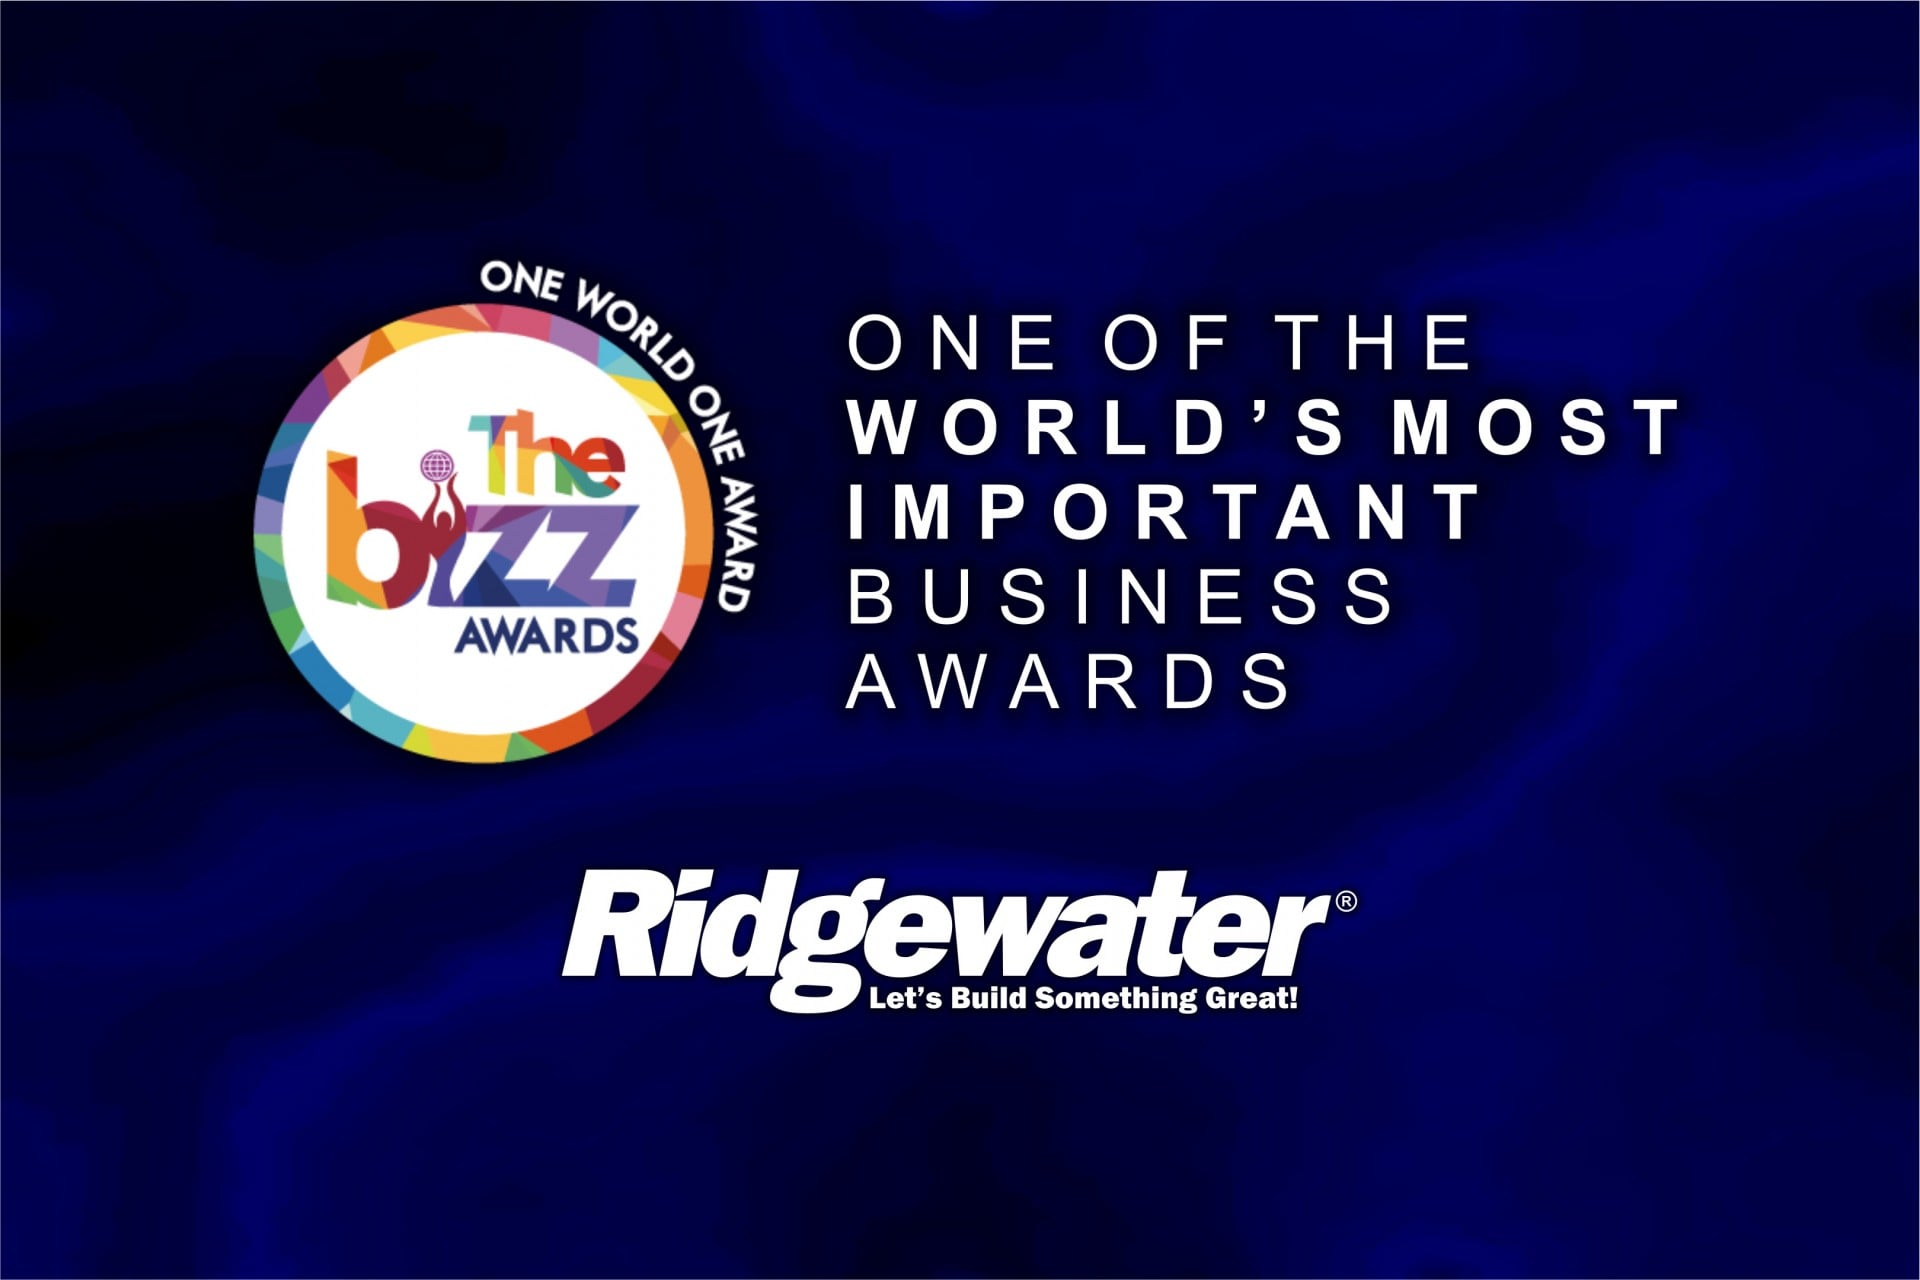 RIDGEWATER HOMES IS AWARDED WITH THE BIZZ FOR ITS DISTINGUISHED PEAK OF SUCCESS